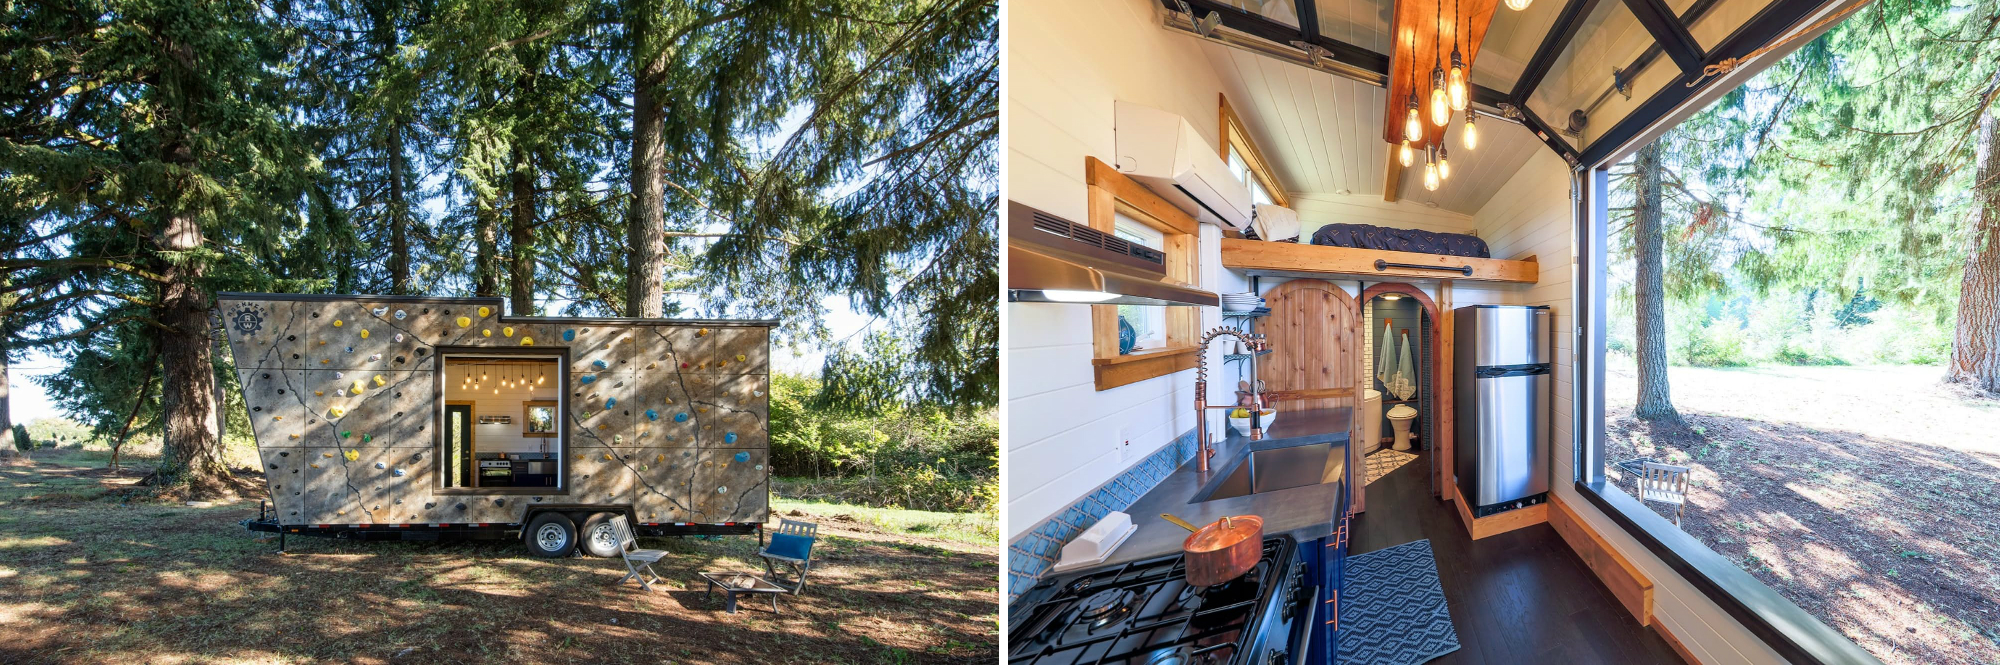 Lovely A Tiny House With A Rock Climbing Wall From Tiny Heirloom, Whose Custom  Packages Start At $89,000. Tiny Heirloom